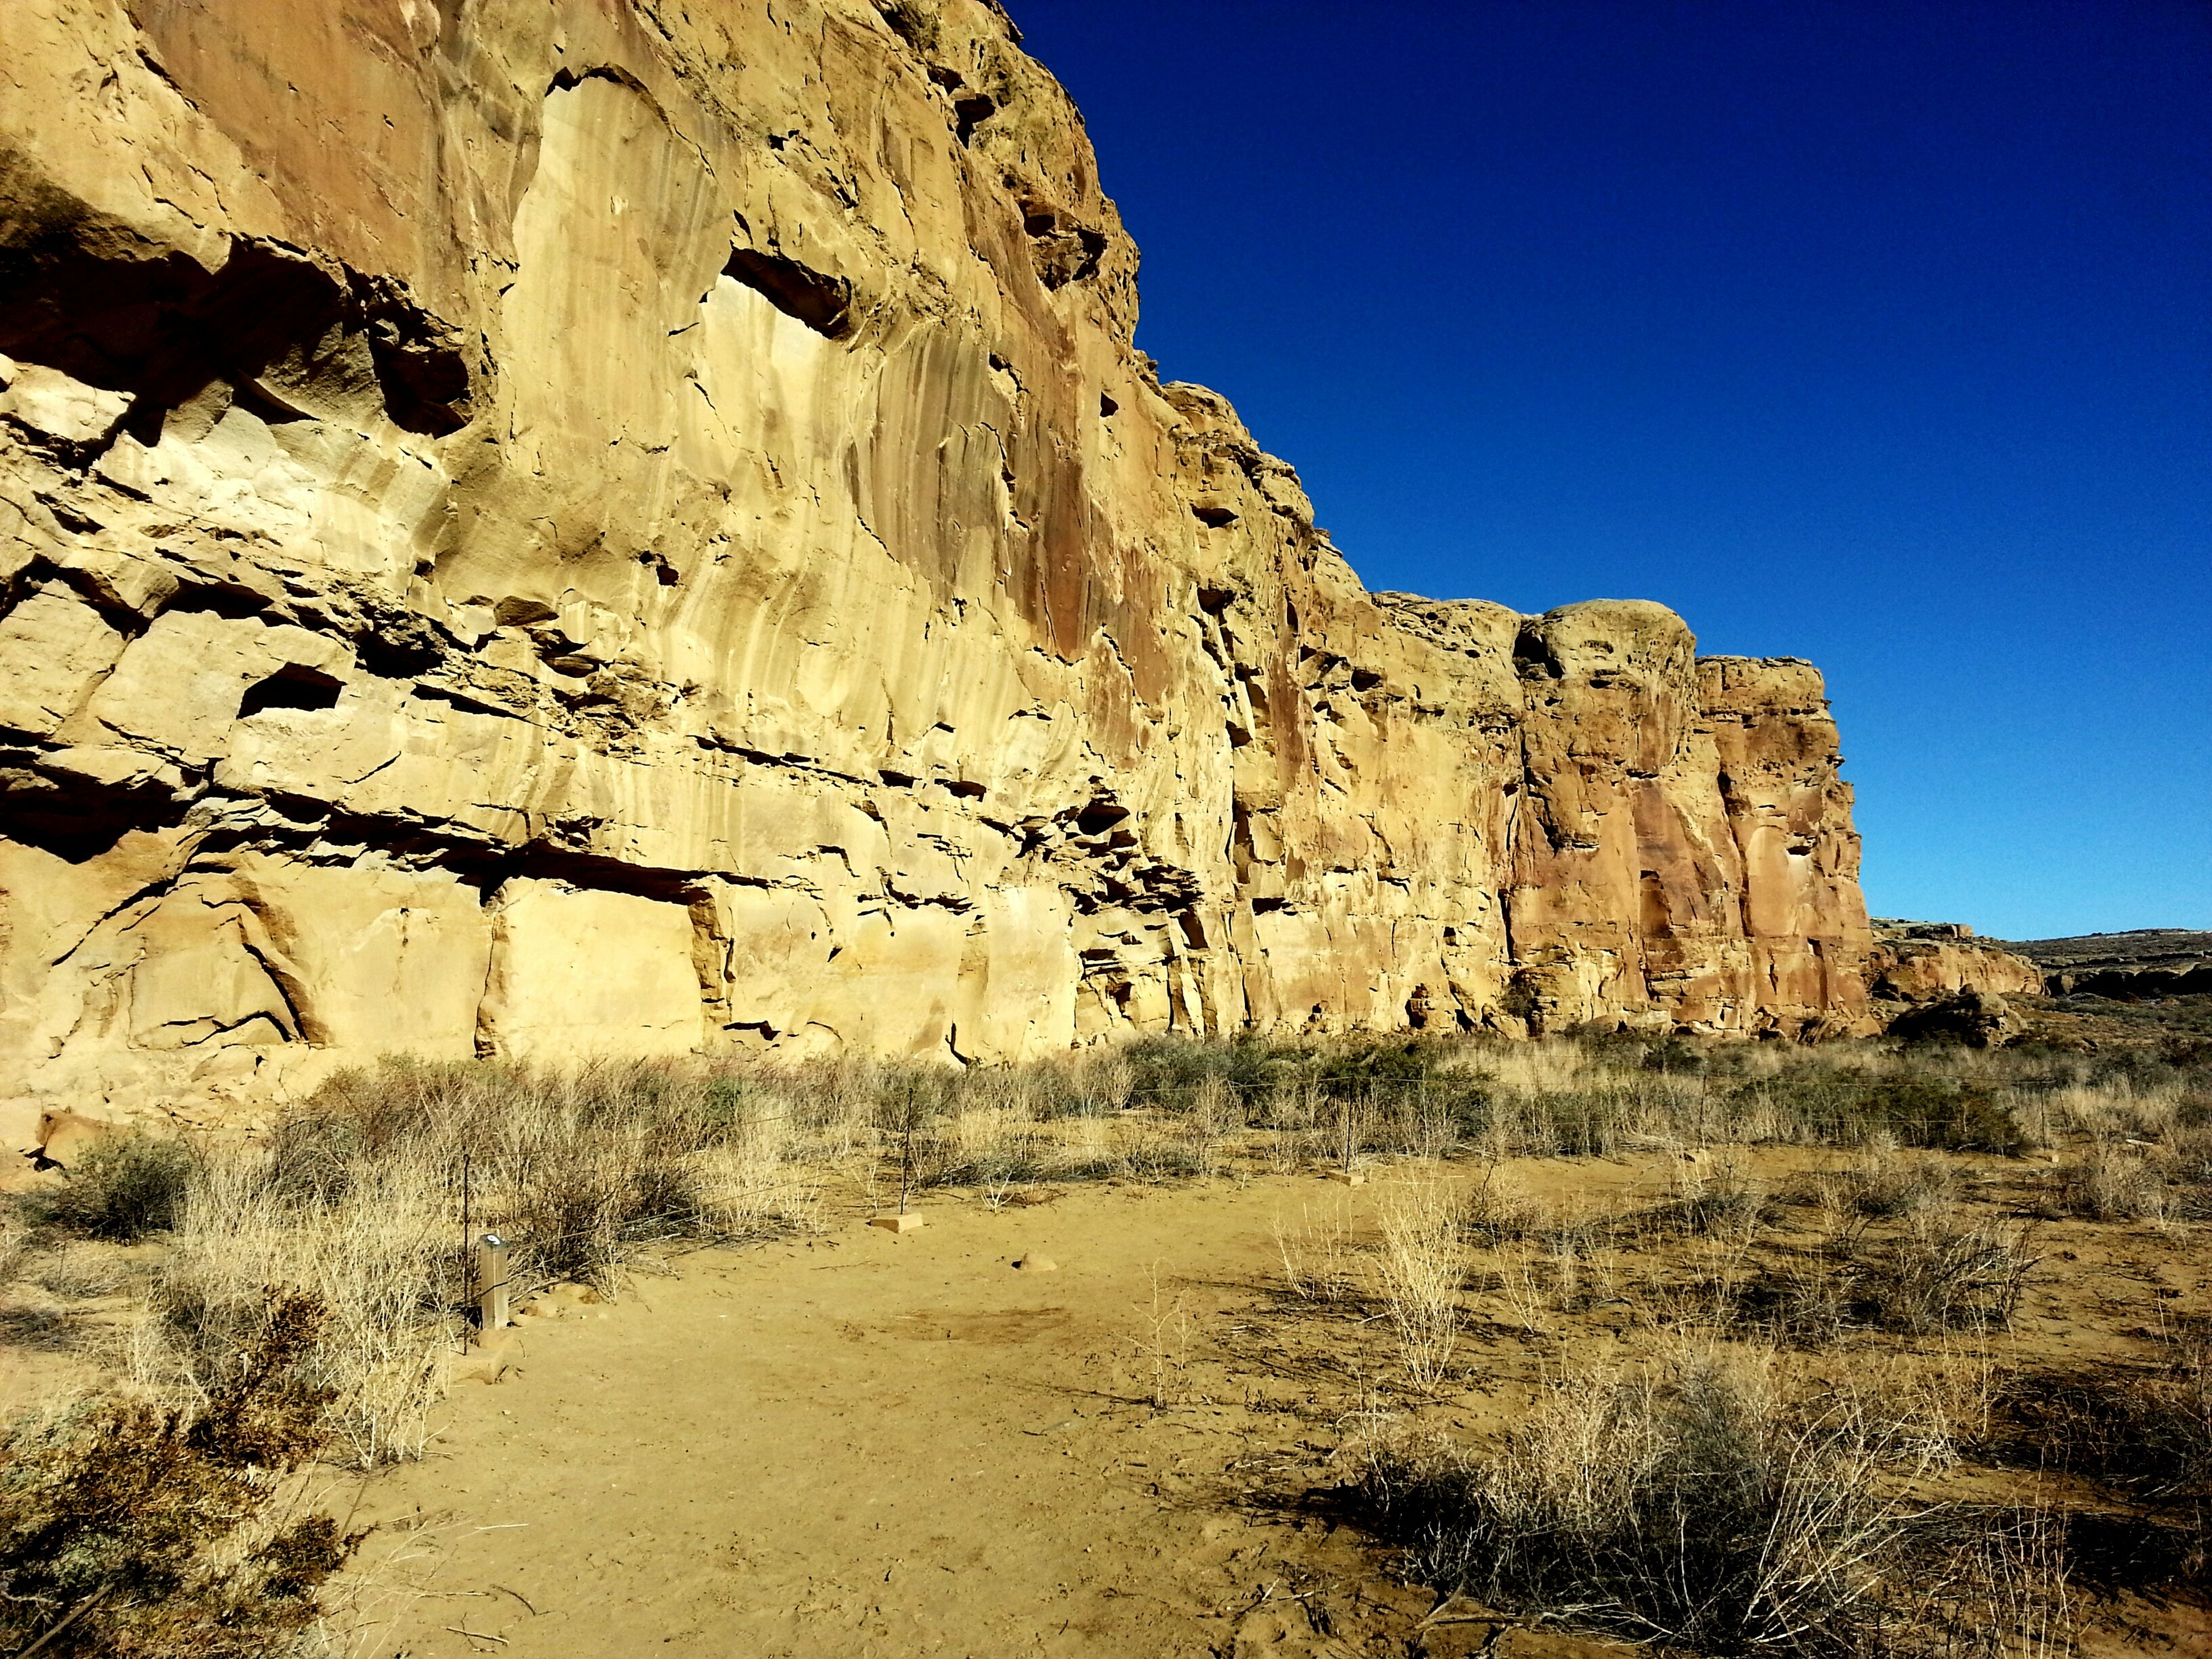 clear sky, blue, rock formation, tranquility, nature, tranquil scene, rock - object, copy space, sunlight, beauty in nature, scenics, sand, landscape, day, non-urban scene, sky, geology, outdoors, low angle view, no people